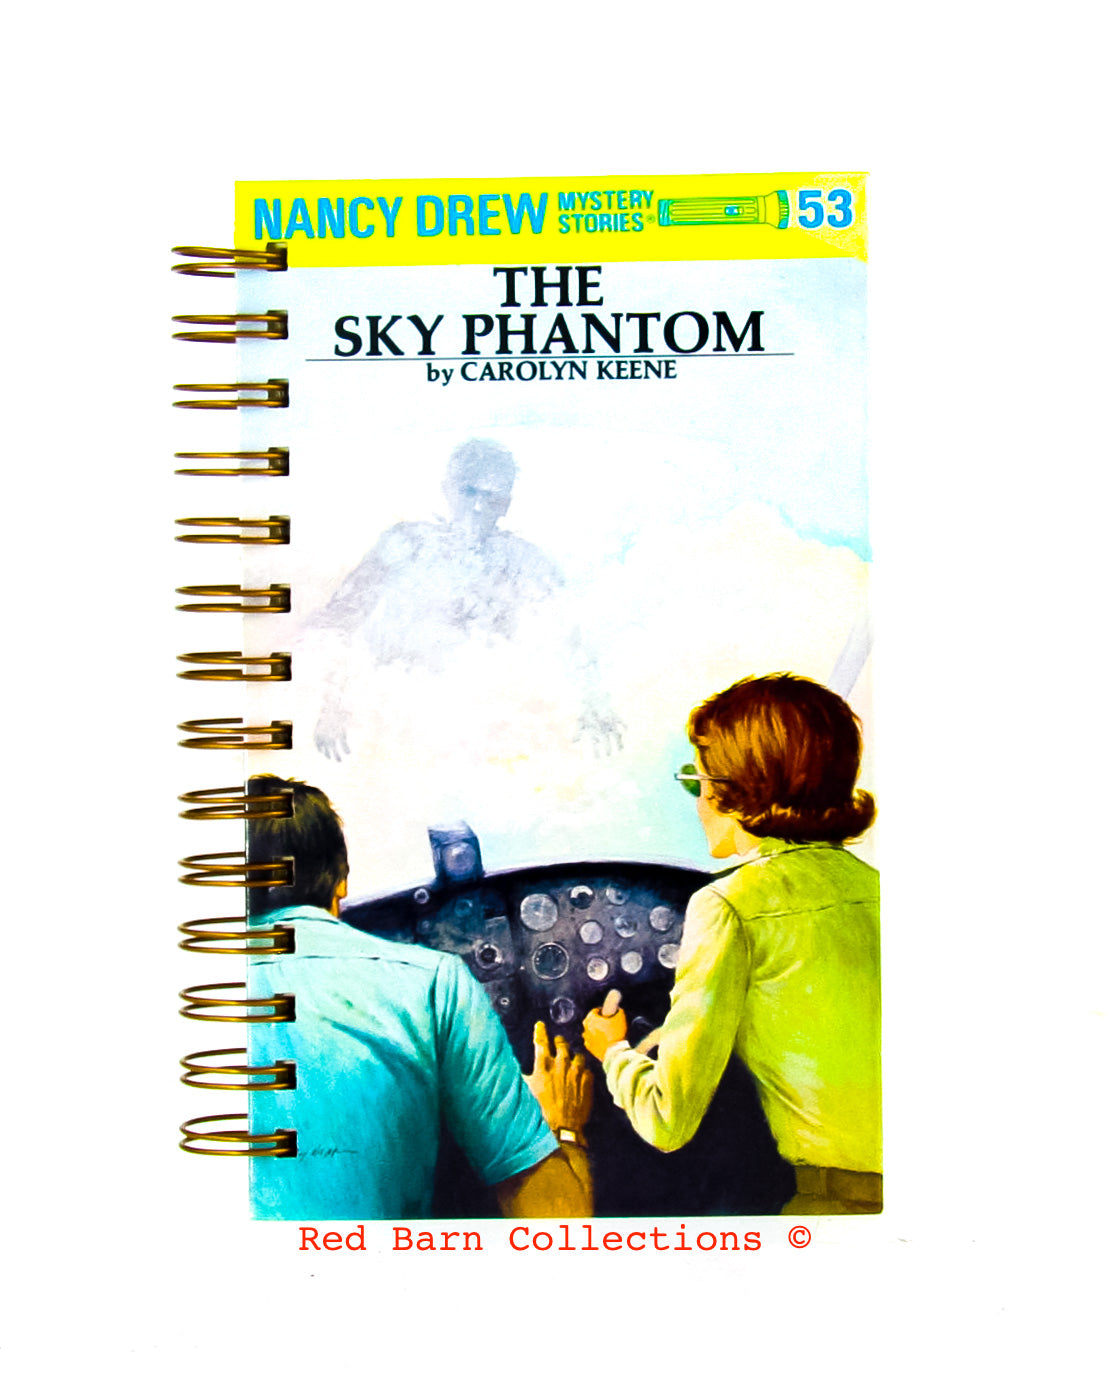 Nancy Drew #53 - The Sky Phantom-Red Barn Collections